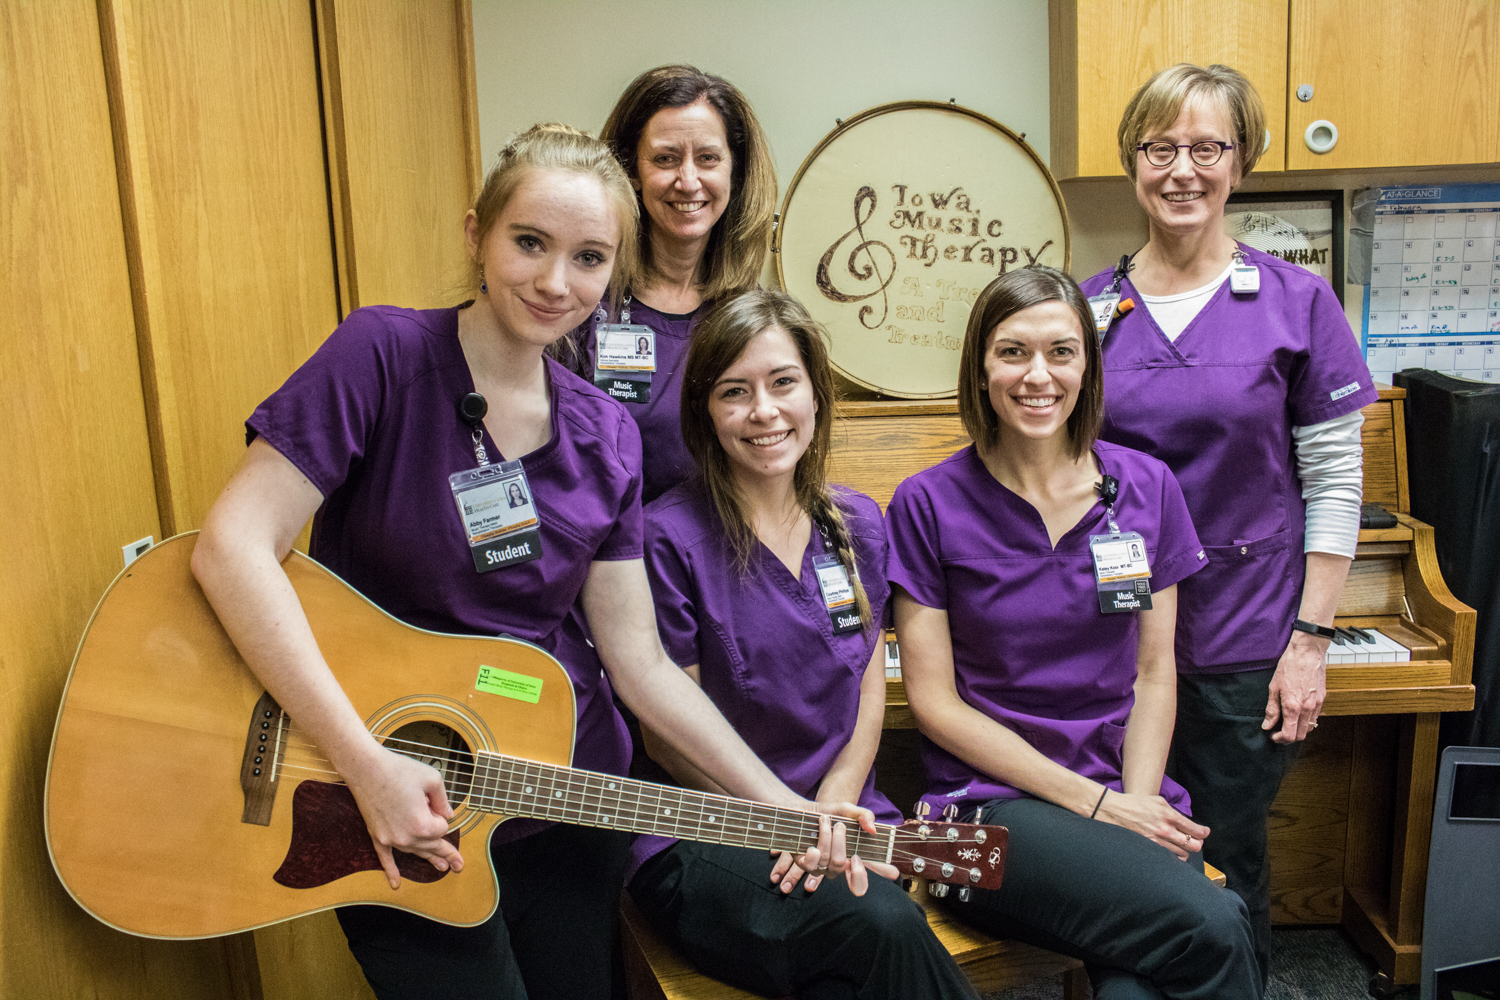 (From left) Student intern Abby Farmer, clinical specialist Kim Hawkins, student intern Courtney Phillips, senior activity therapist Katey Kooi, and pediatric specialist Kirsten Nelson pose for a portrait at the University of Iowa Hospitals and Clinics on Wednesday, February 27, 2019.